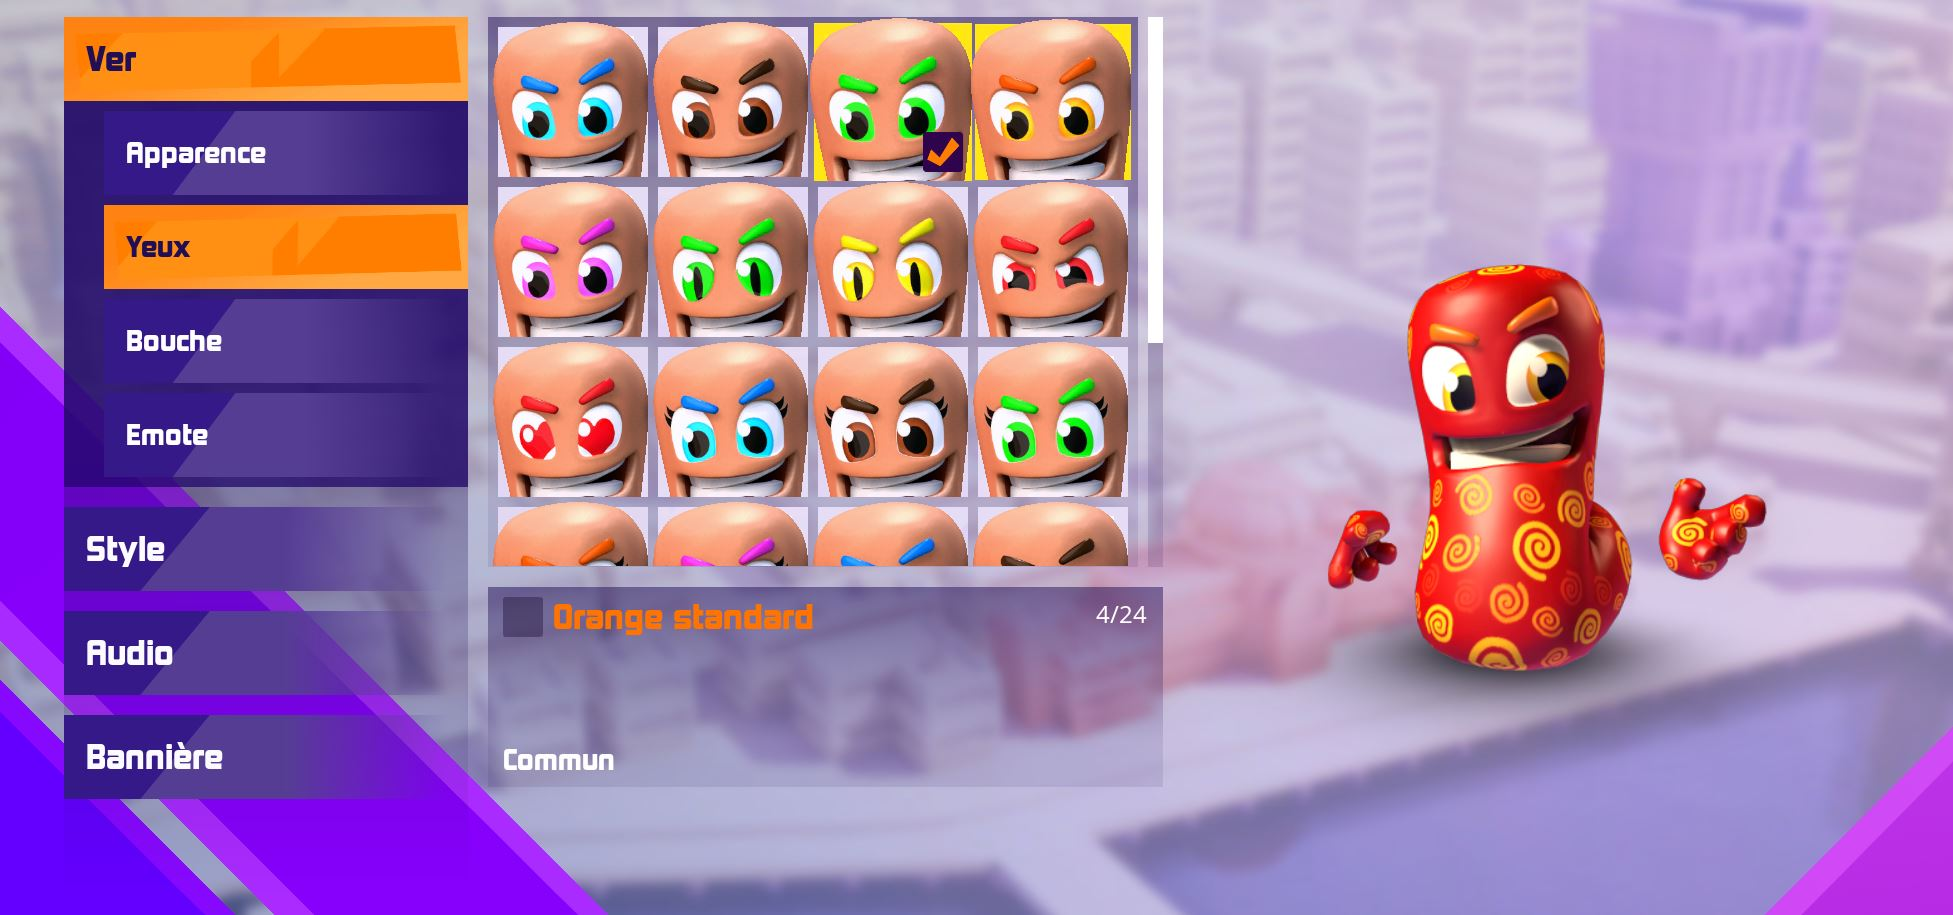 Personnalisation Yeux - Worms Rumble